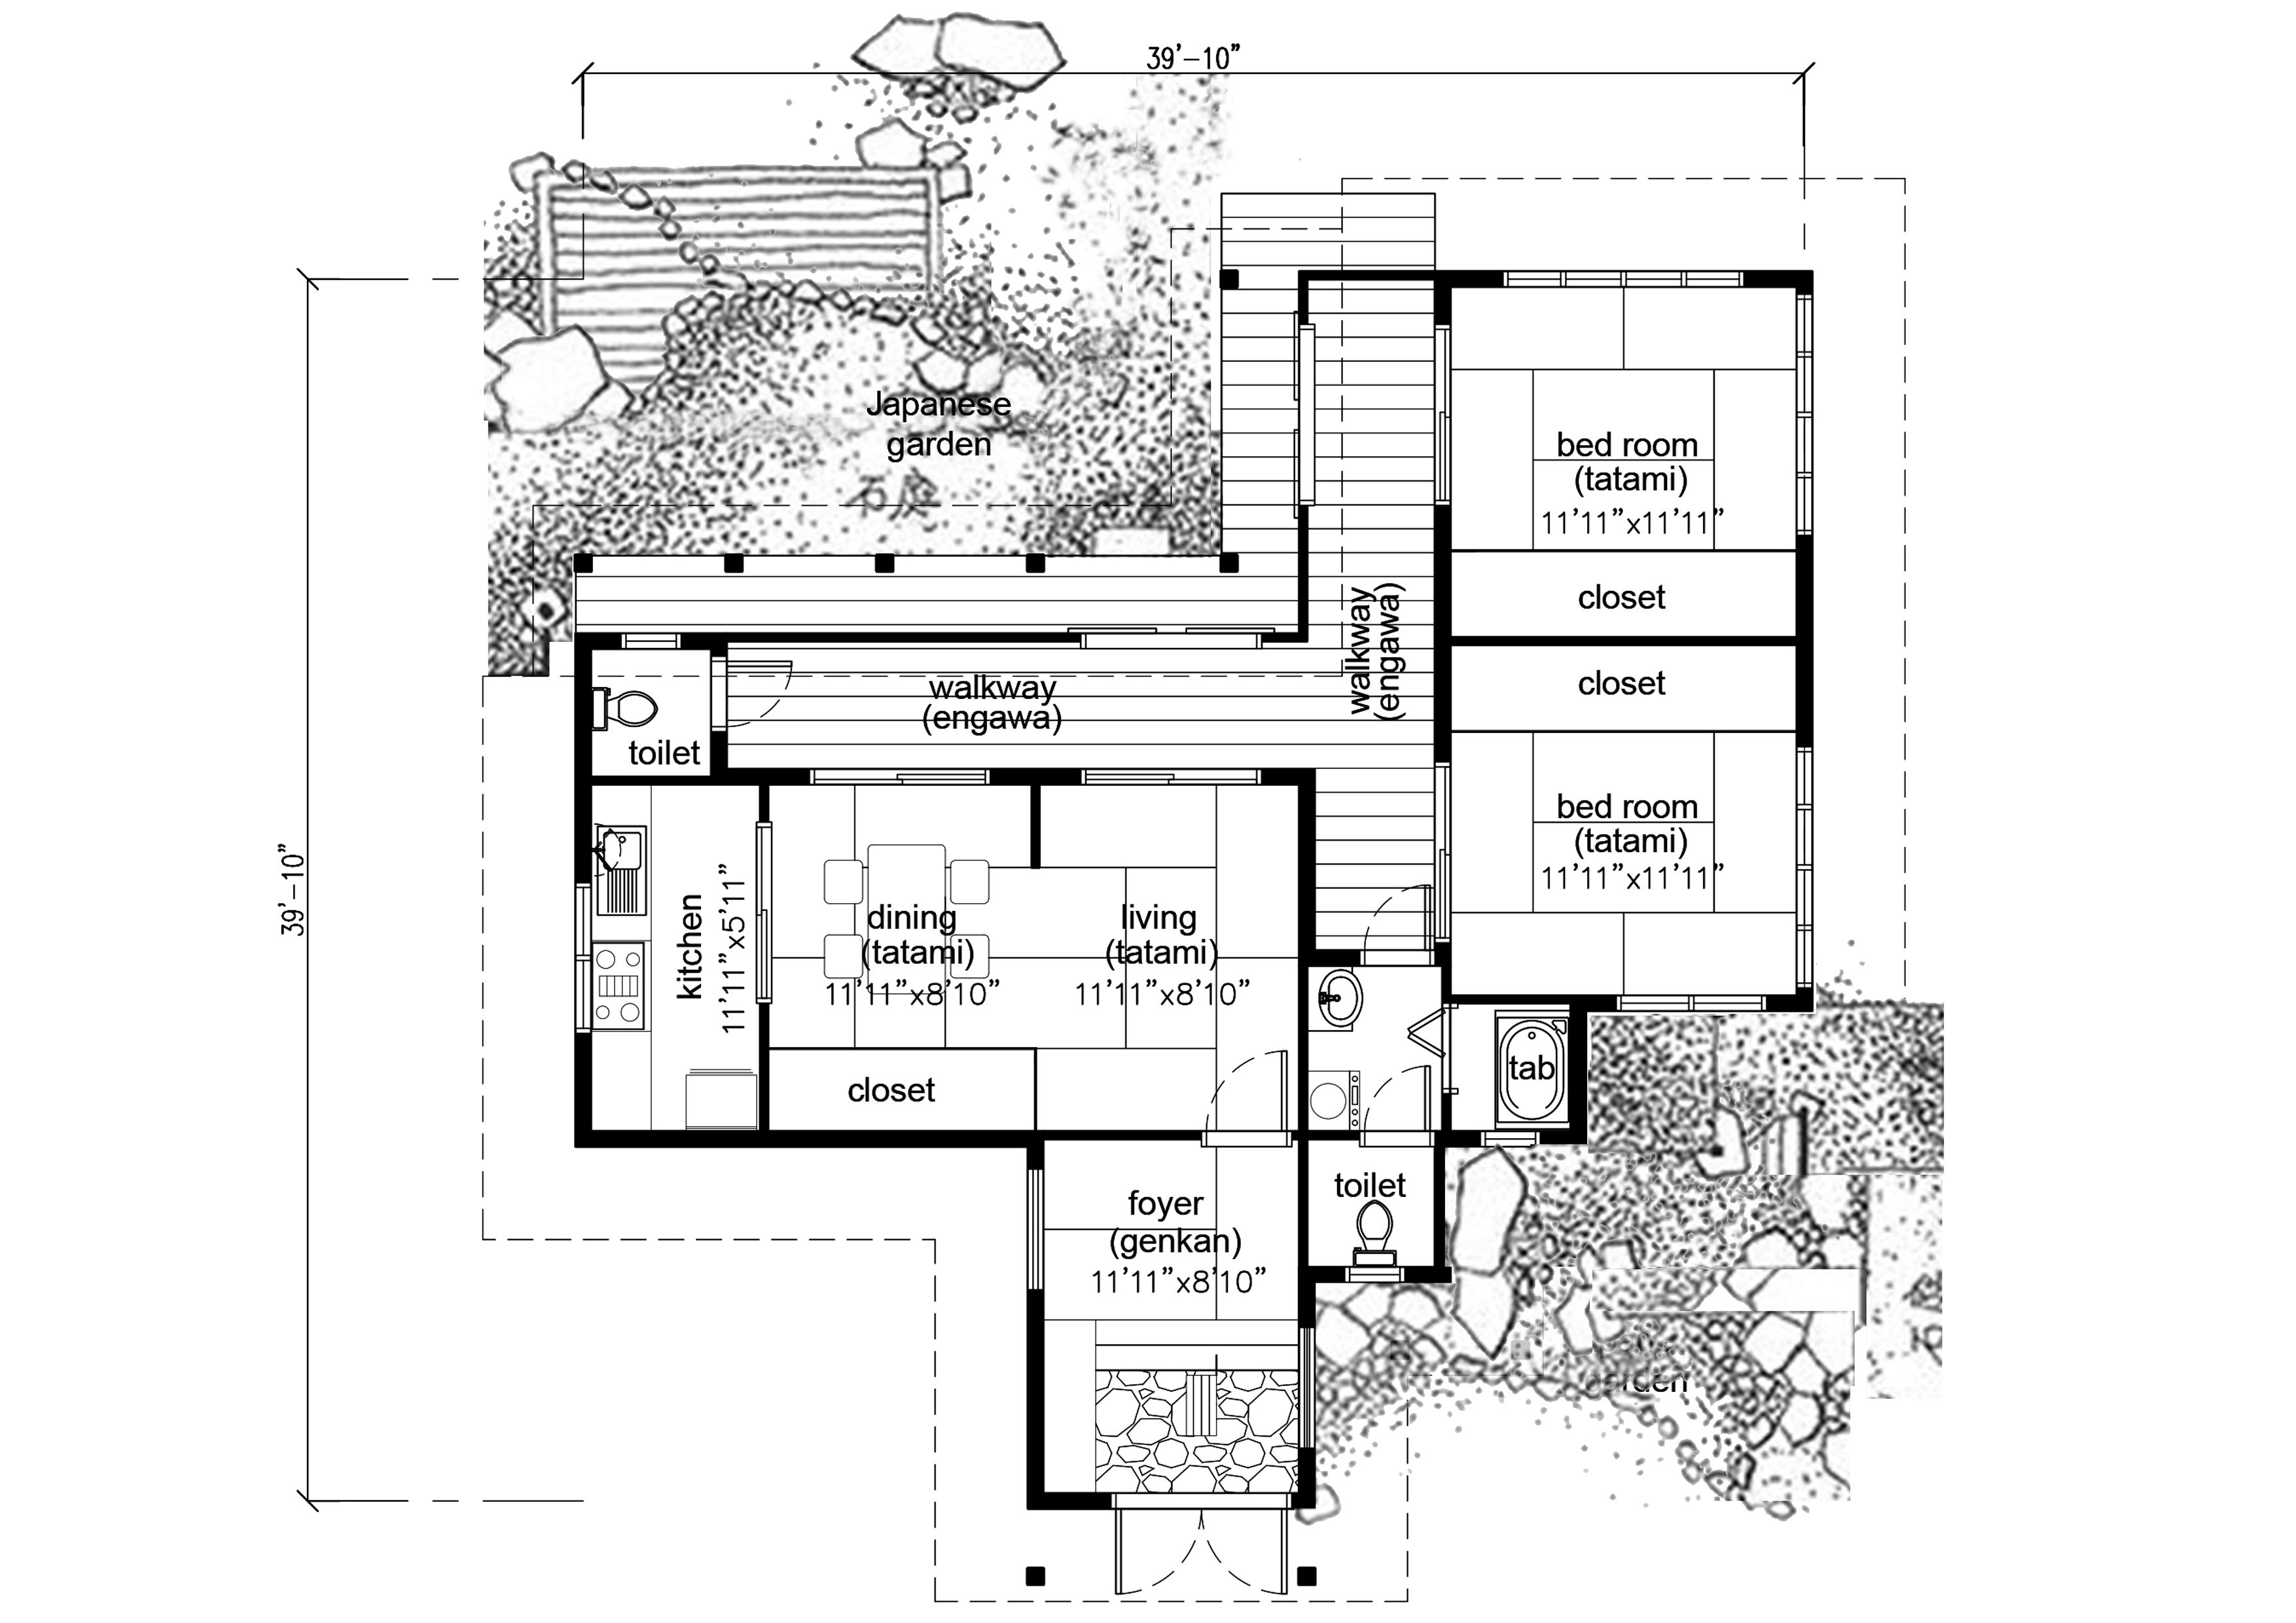 traditional japanese house floor plan enchanting on modern interior and exterior ideas for your. Black Bedroom Furniture Sets. Home Design Ideas